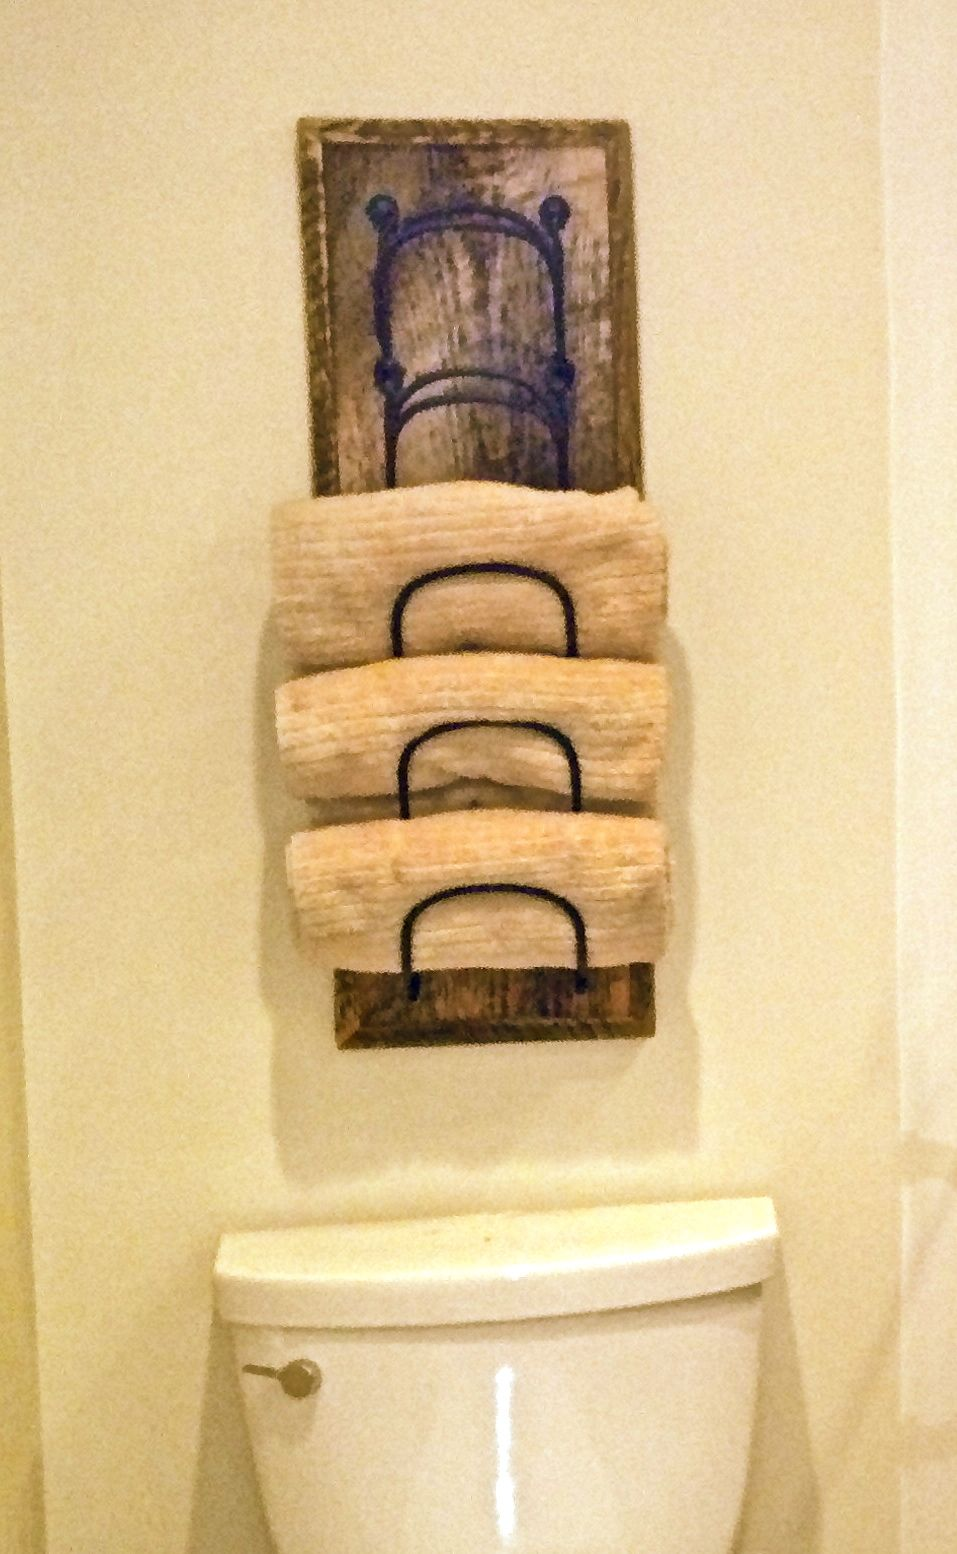 Rorys Rustic Furniture Hand Towels Bathroom Bathroom Hand Towel Holder How To Roll Towels